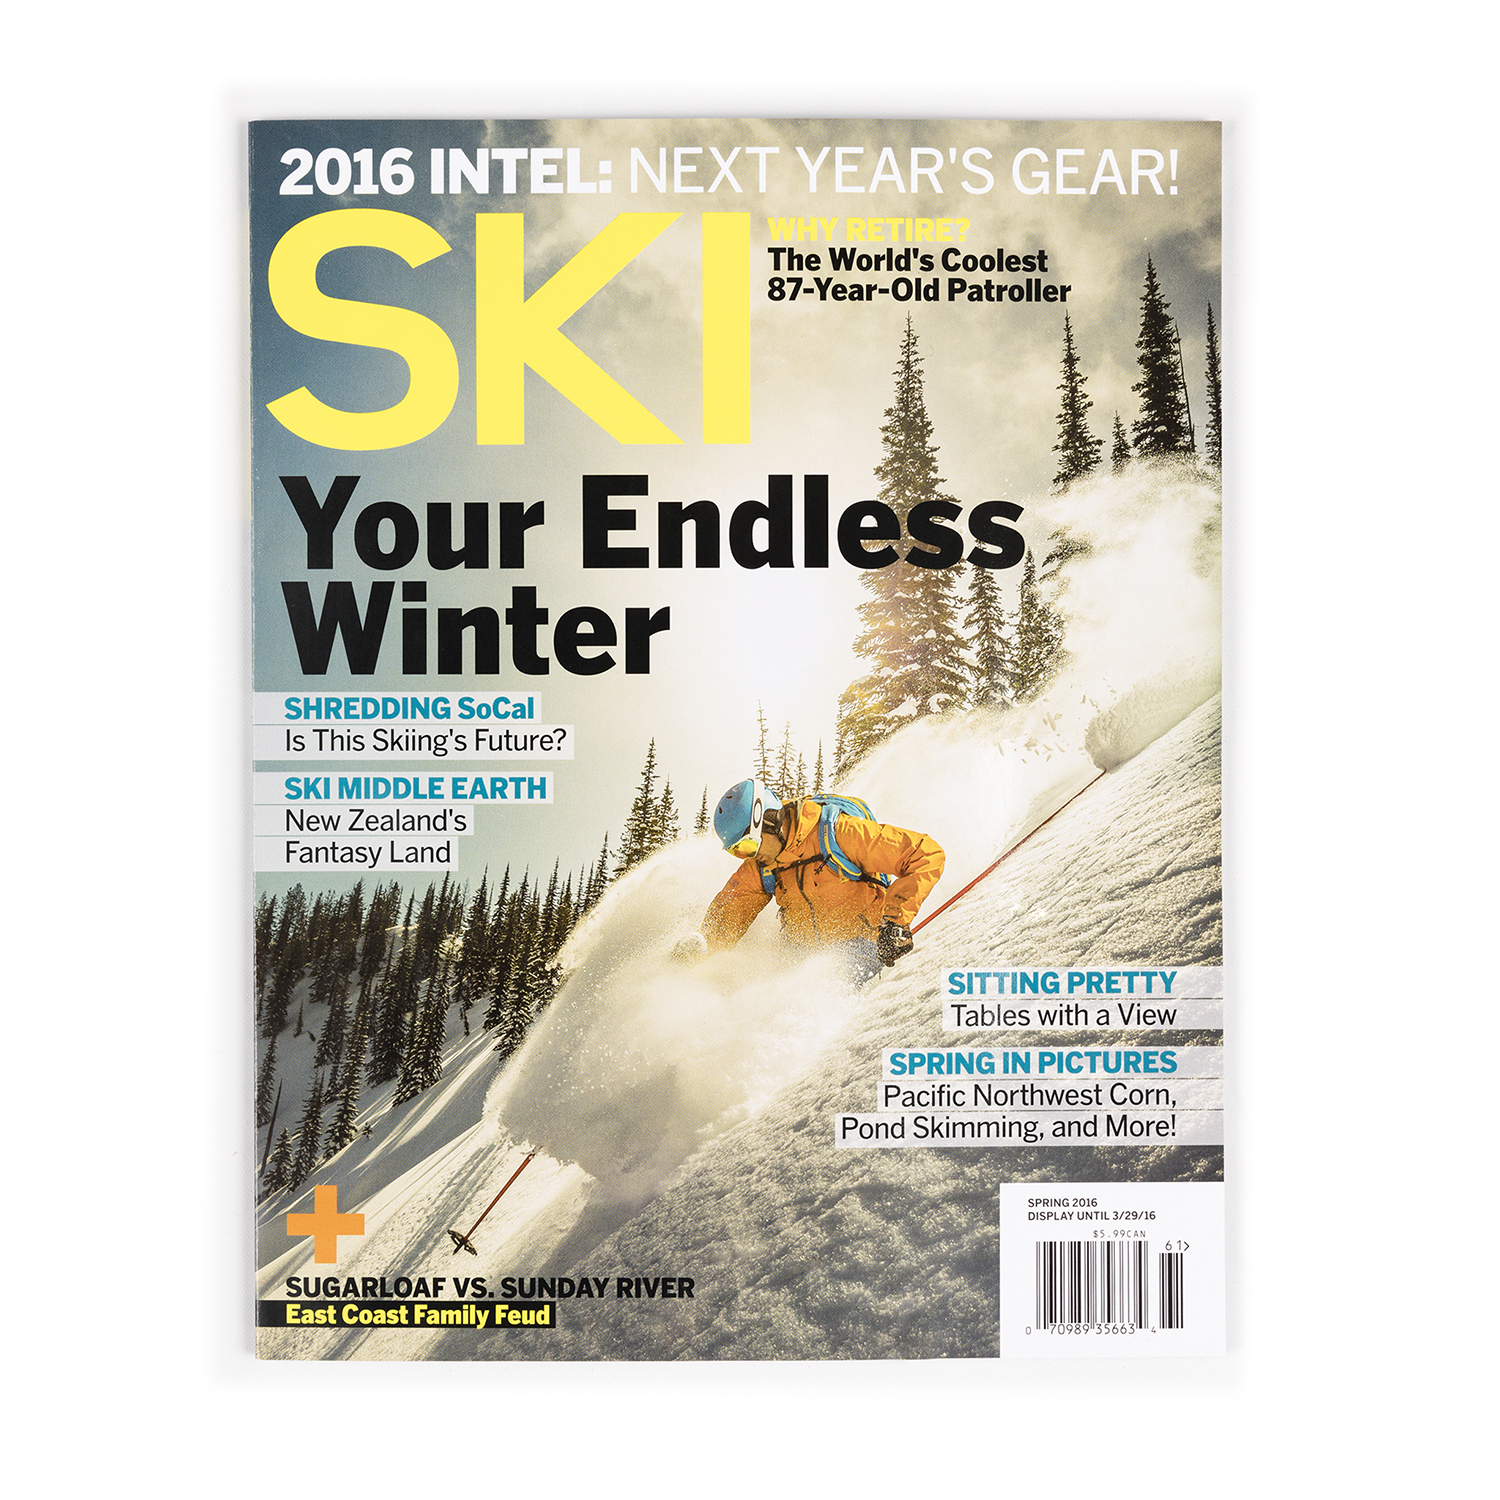 Valhalla Powdercats on the Cover of Ski Magazine!